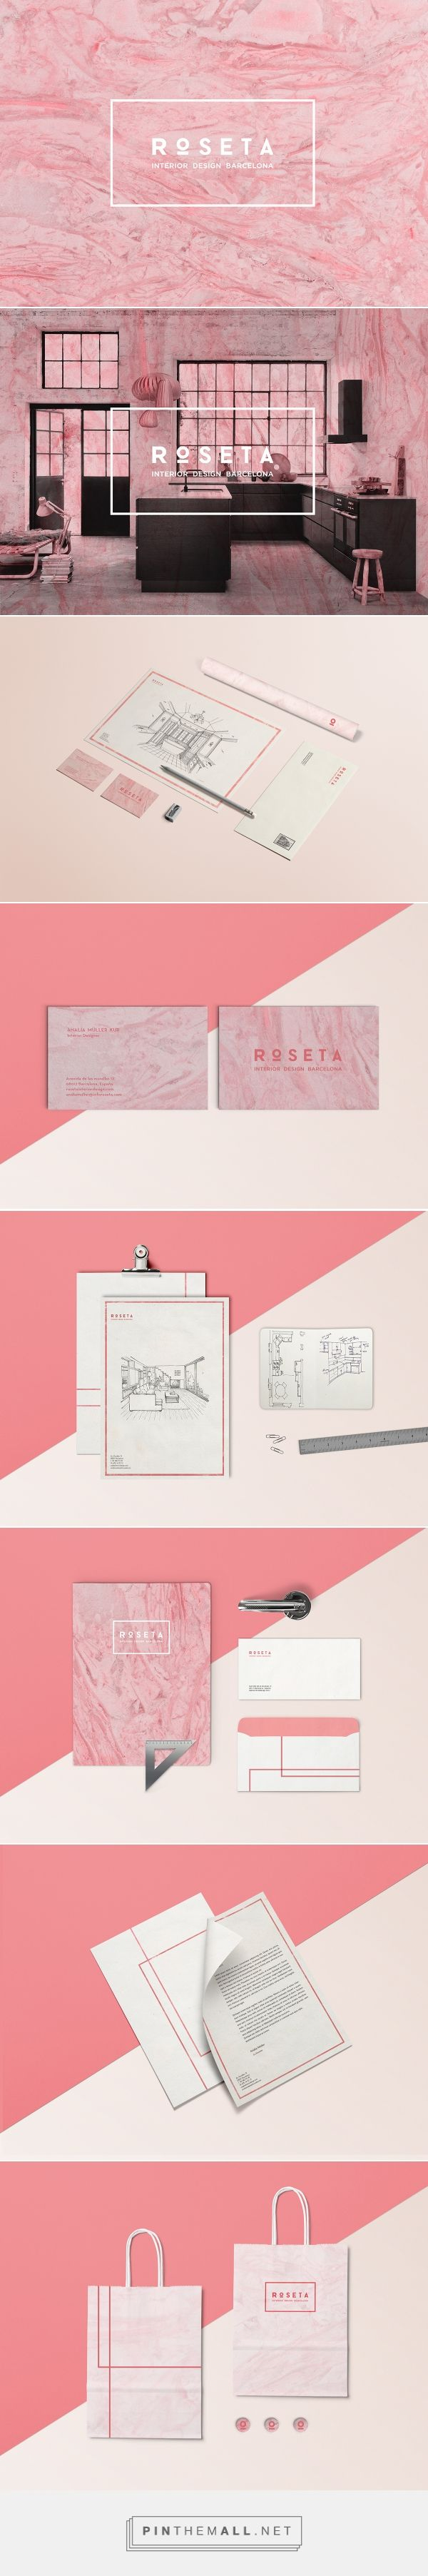 Roseta Interior Design Branding by Rhombus Design | Fivestar Branding Agency – Design and Branding Agency & Curated Inspiration Gallery